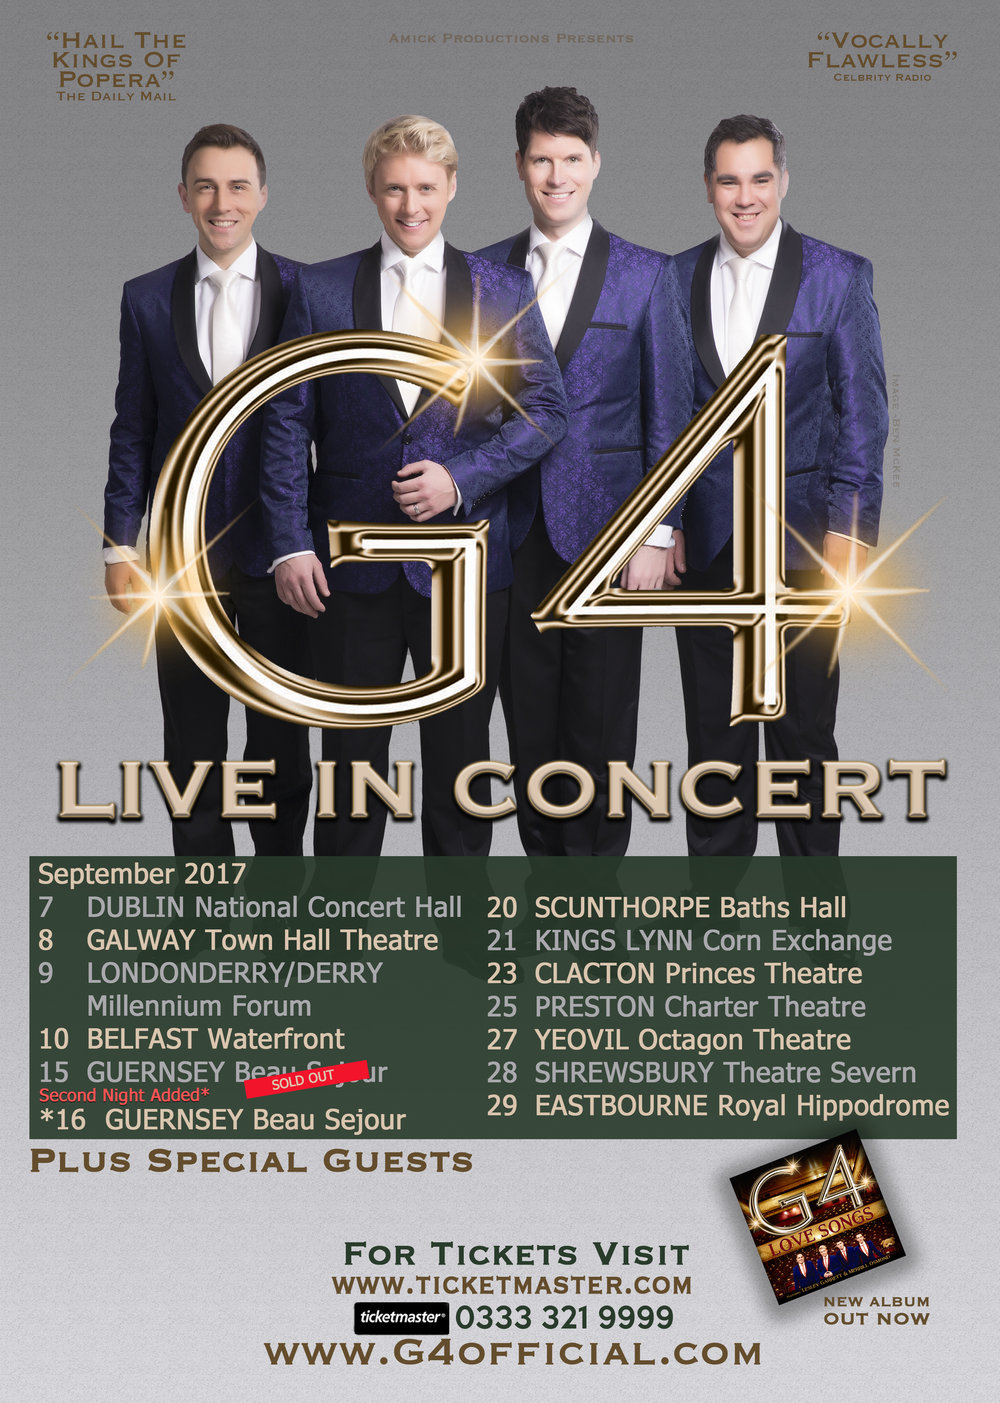 G4 live in concert kings lynn mary jess official website wine and have the chance to meet the guys up close and take photos get their autographs get your tickets here we look forward to seeing you on tour m4hsunfo